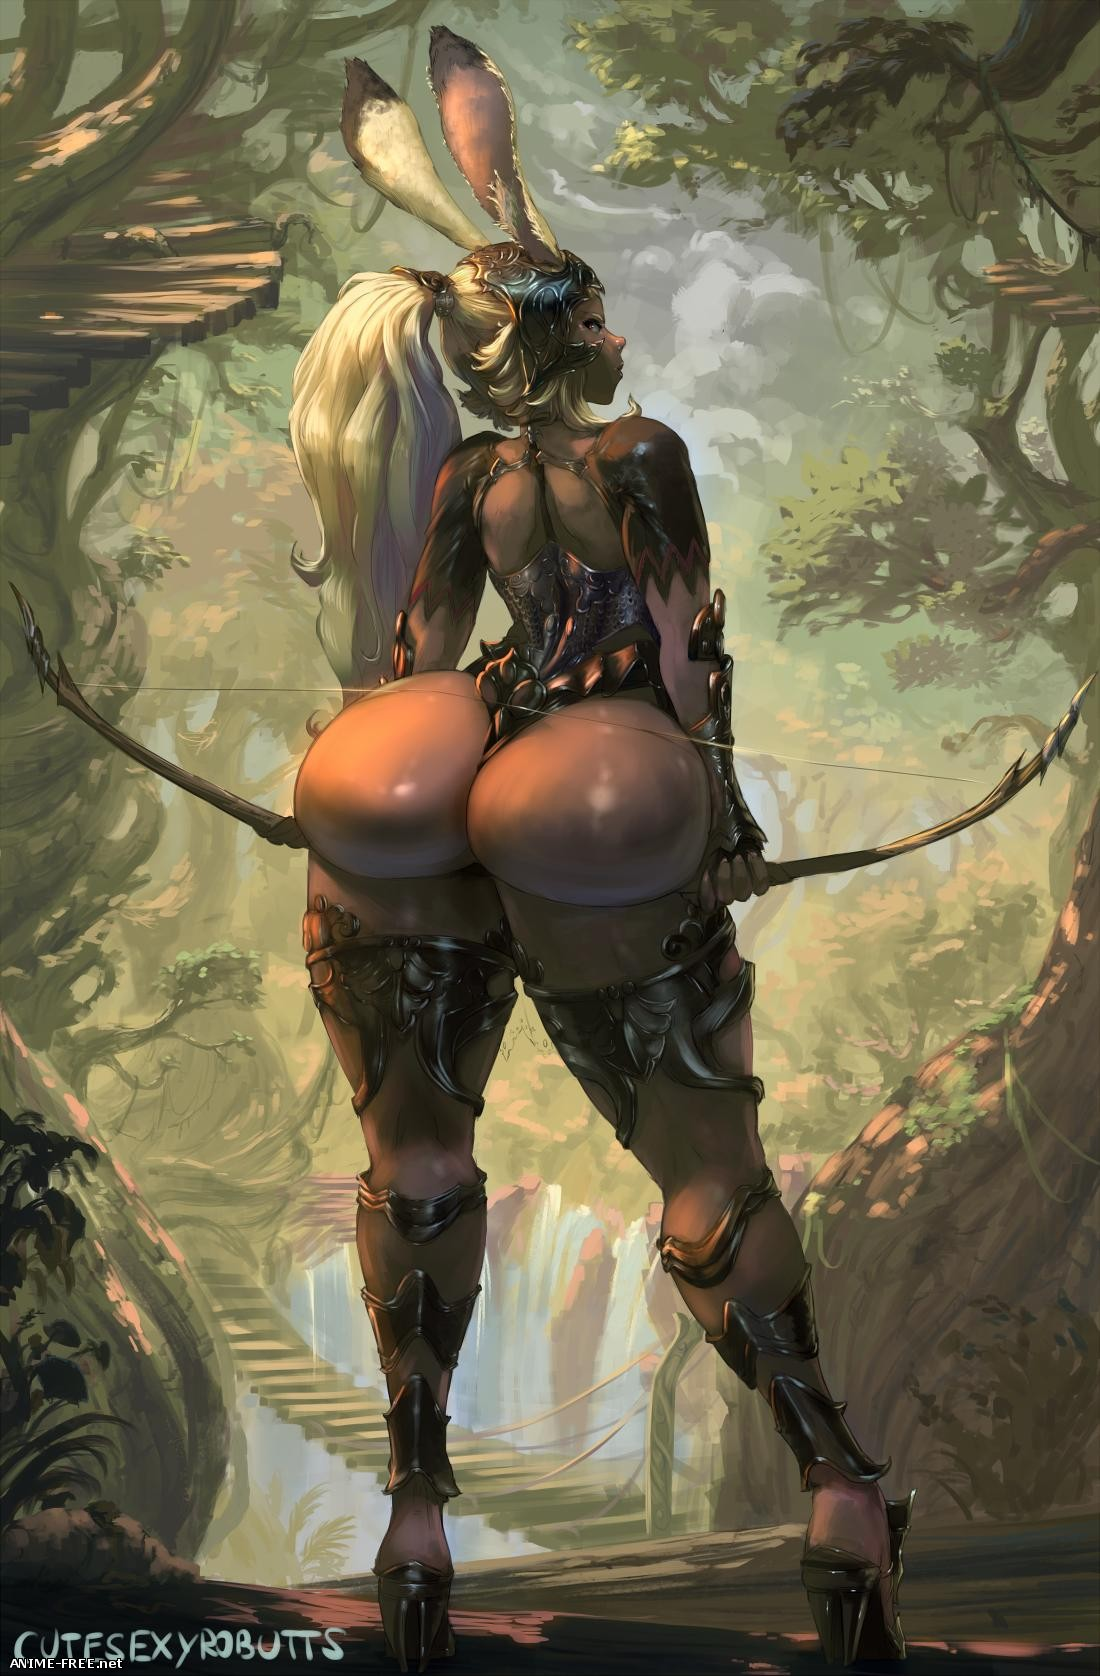 CuteSexyRoButts (ArtWork Collection) [Uncen] [JPG,PNG] Hentai ART